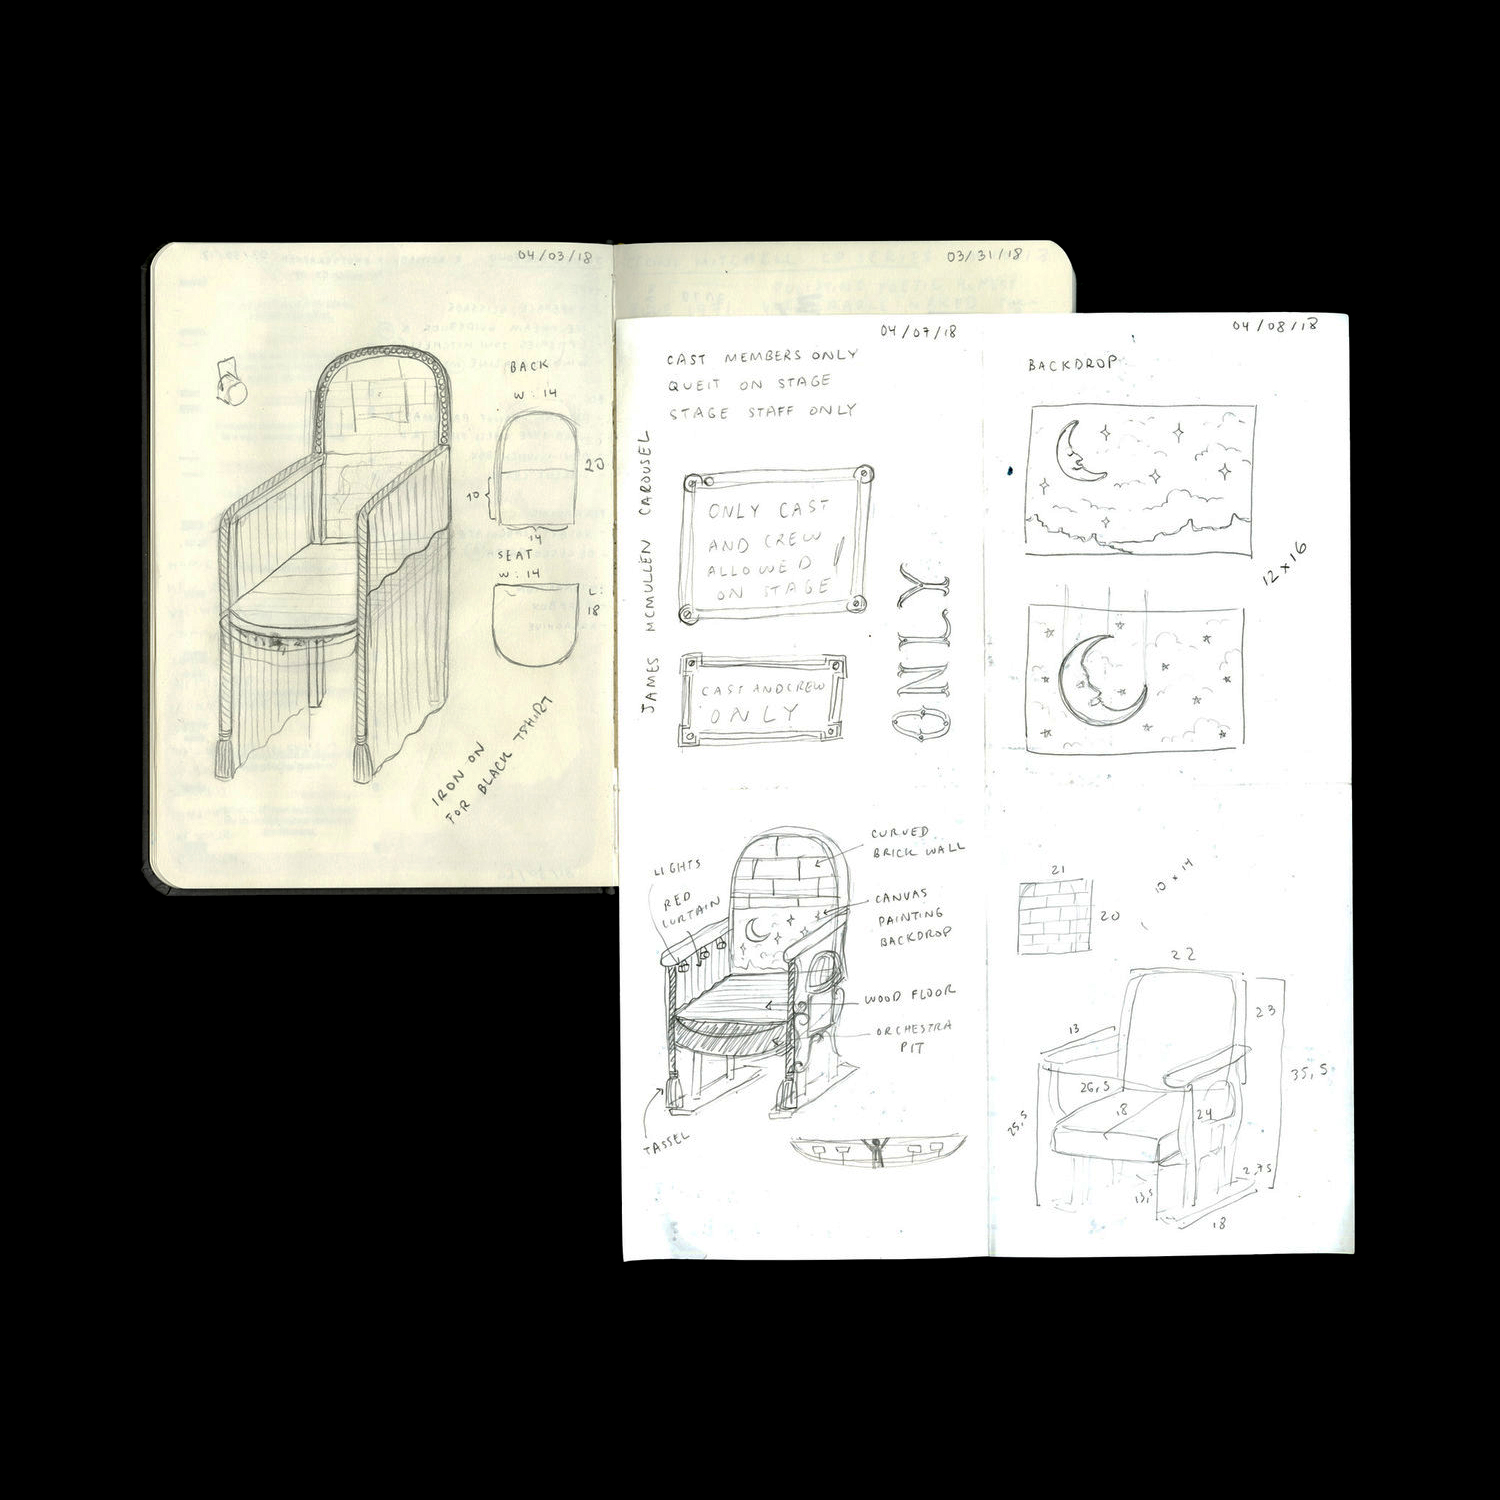 ONG_2019_SP_Chairs_190428_Sketch-1